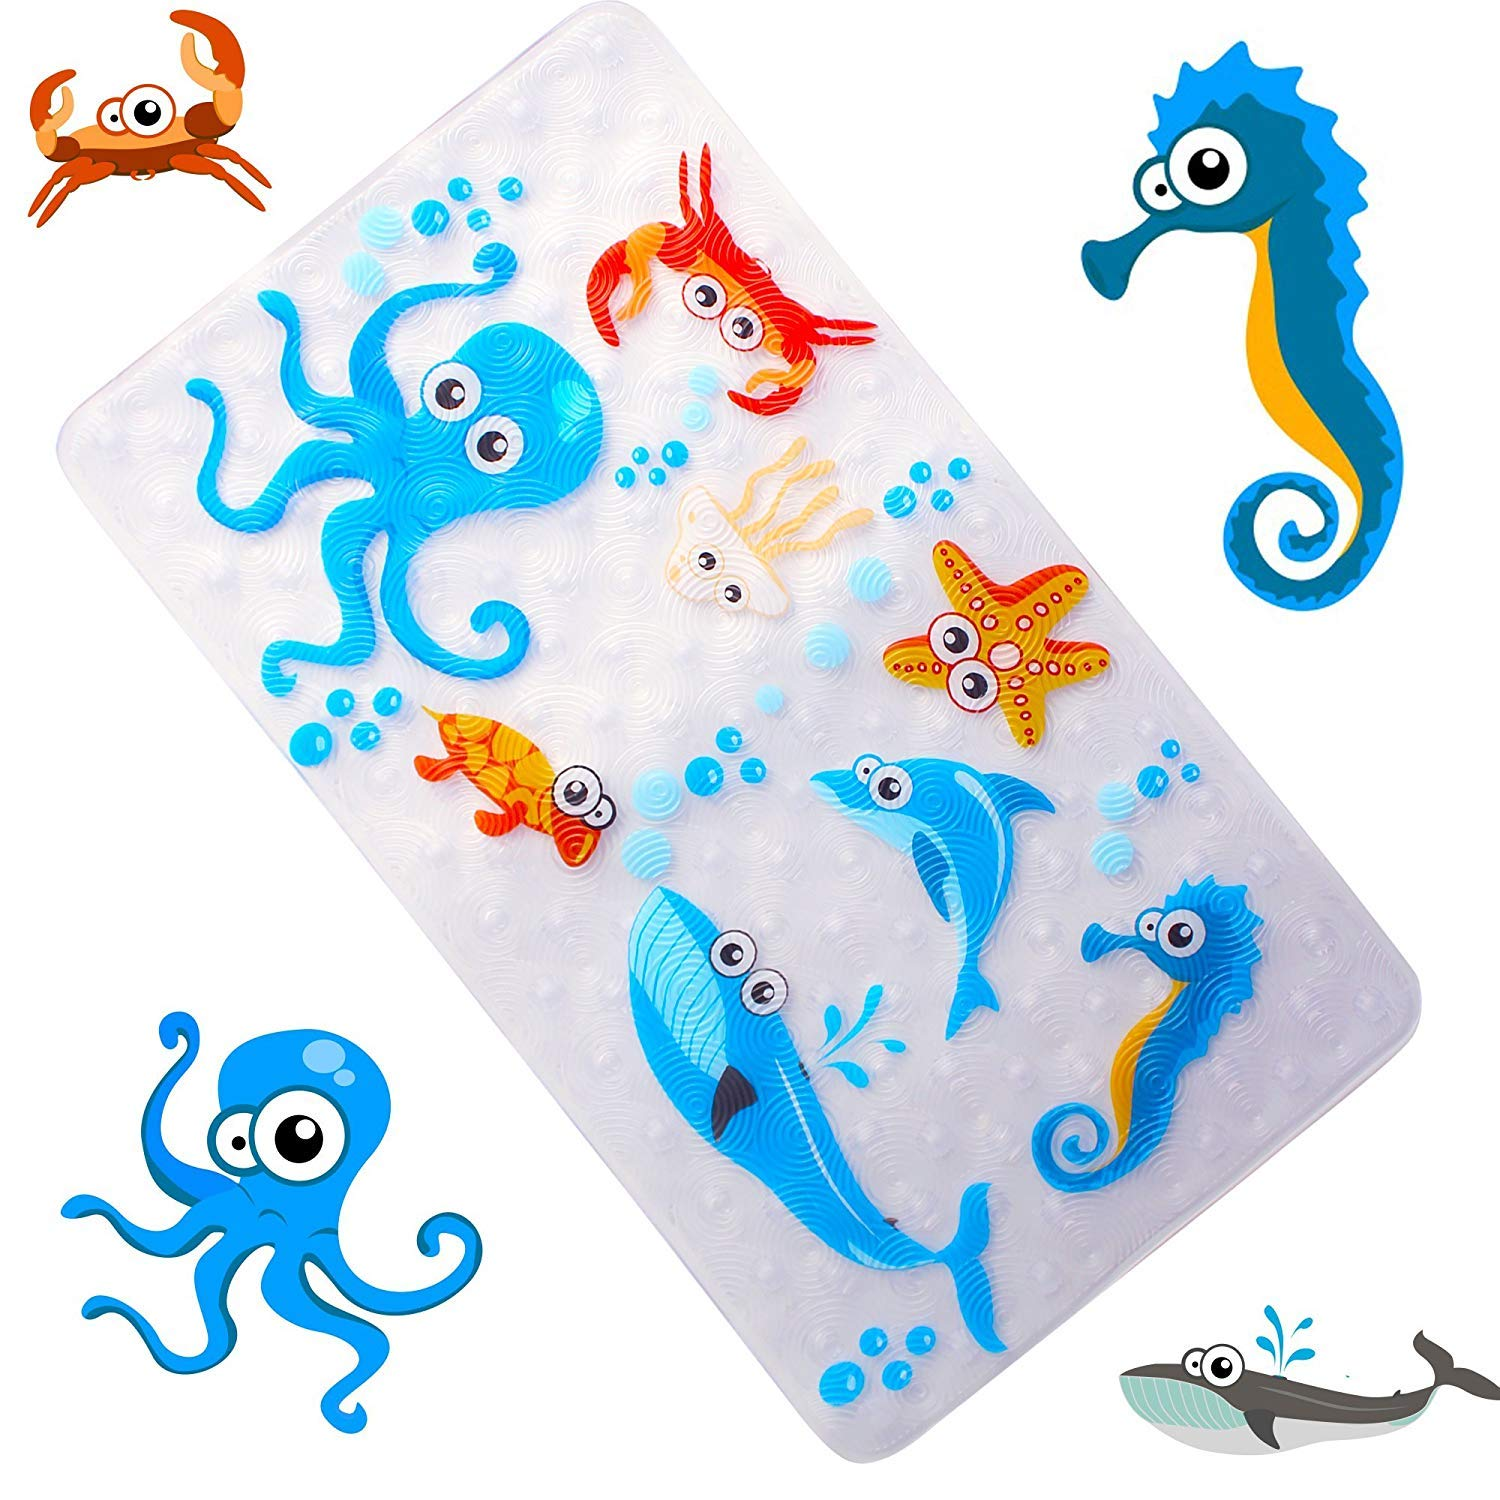 Non-Slip Bath Mat Bathtub and Shower Mat for Baby Kid's,Anti-Bacterial,Machine Washable,Large Toddler Rubber Anti Non Skid Bath Matts Fits Any Size Bath Tub,16inchx27inch (Sea world) WARRAH A--6WARRAH L--27